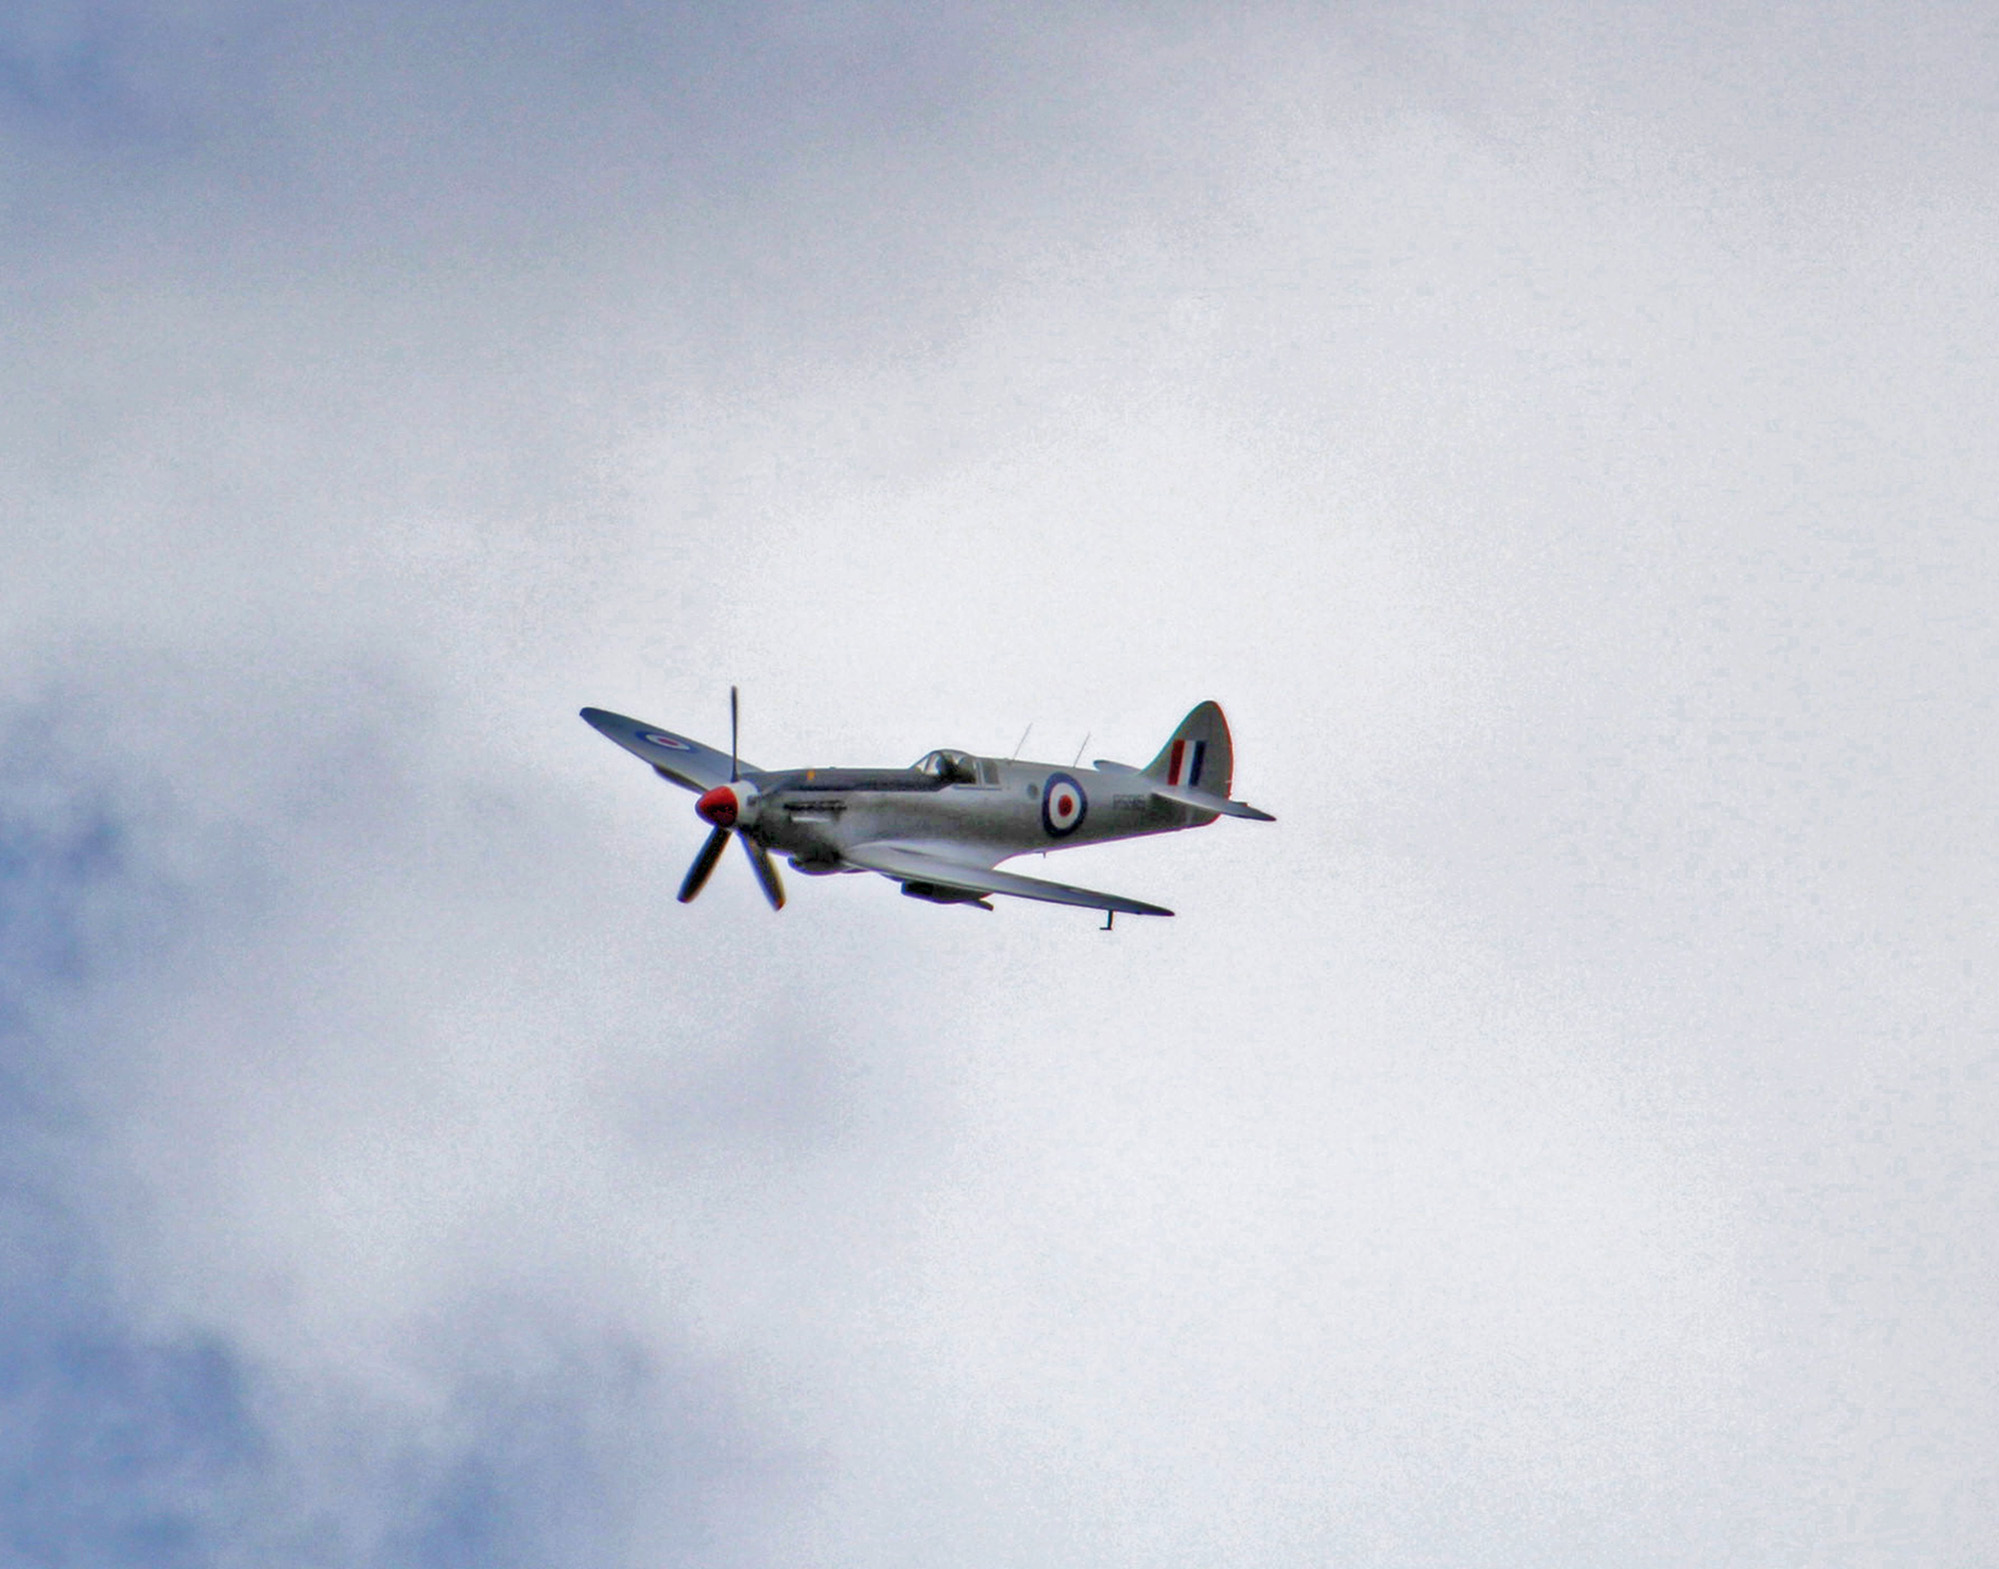 Spitfire in flight!